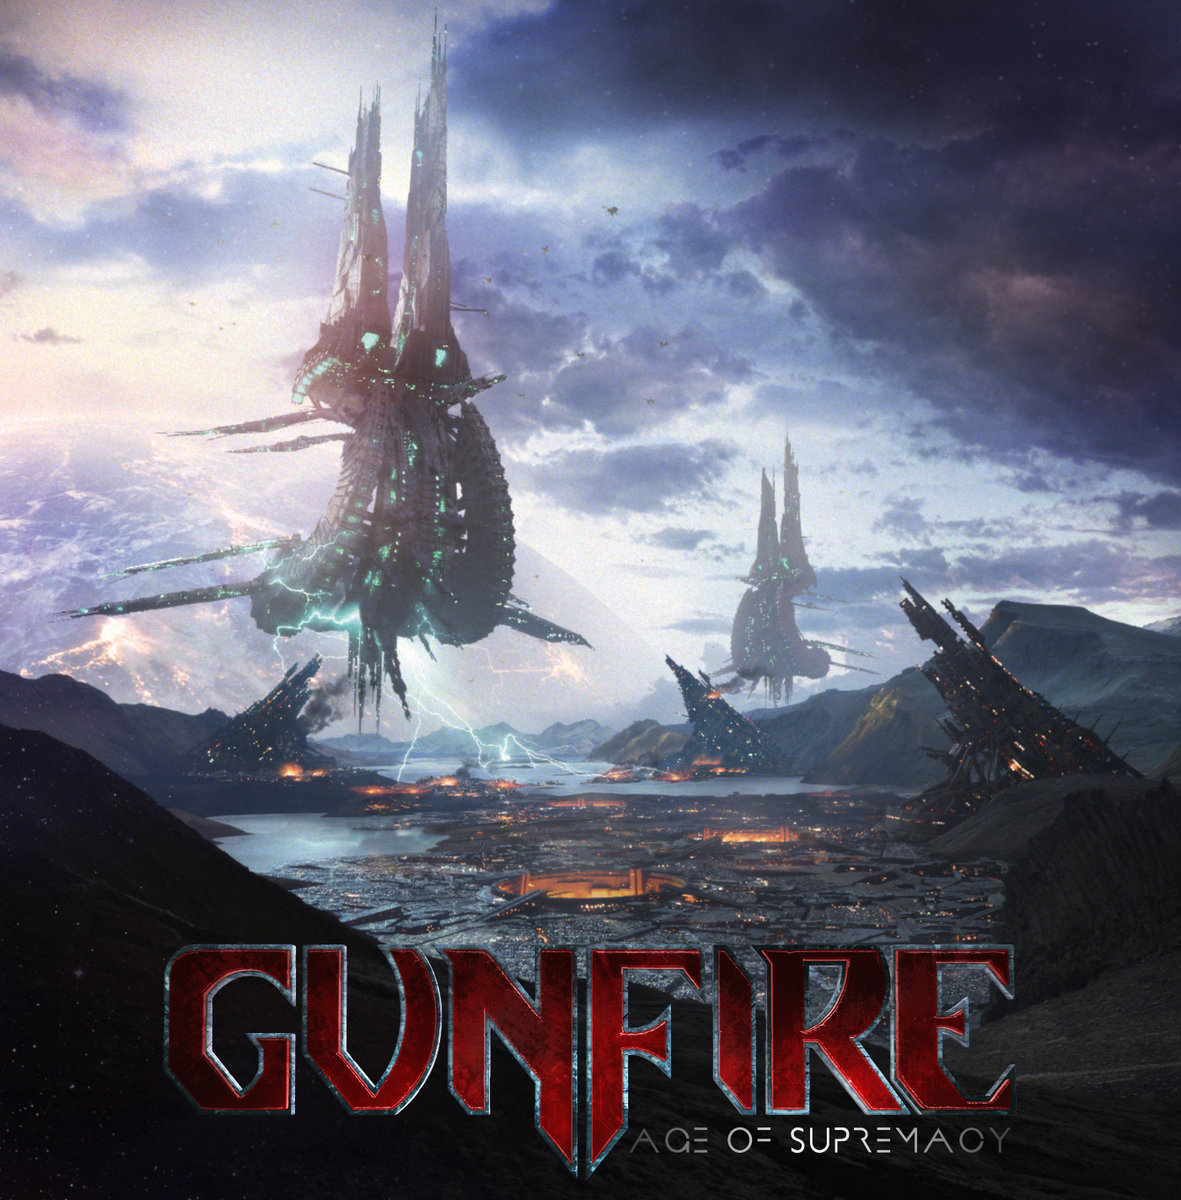 Gunfire: Age of Supremacy